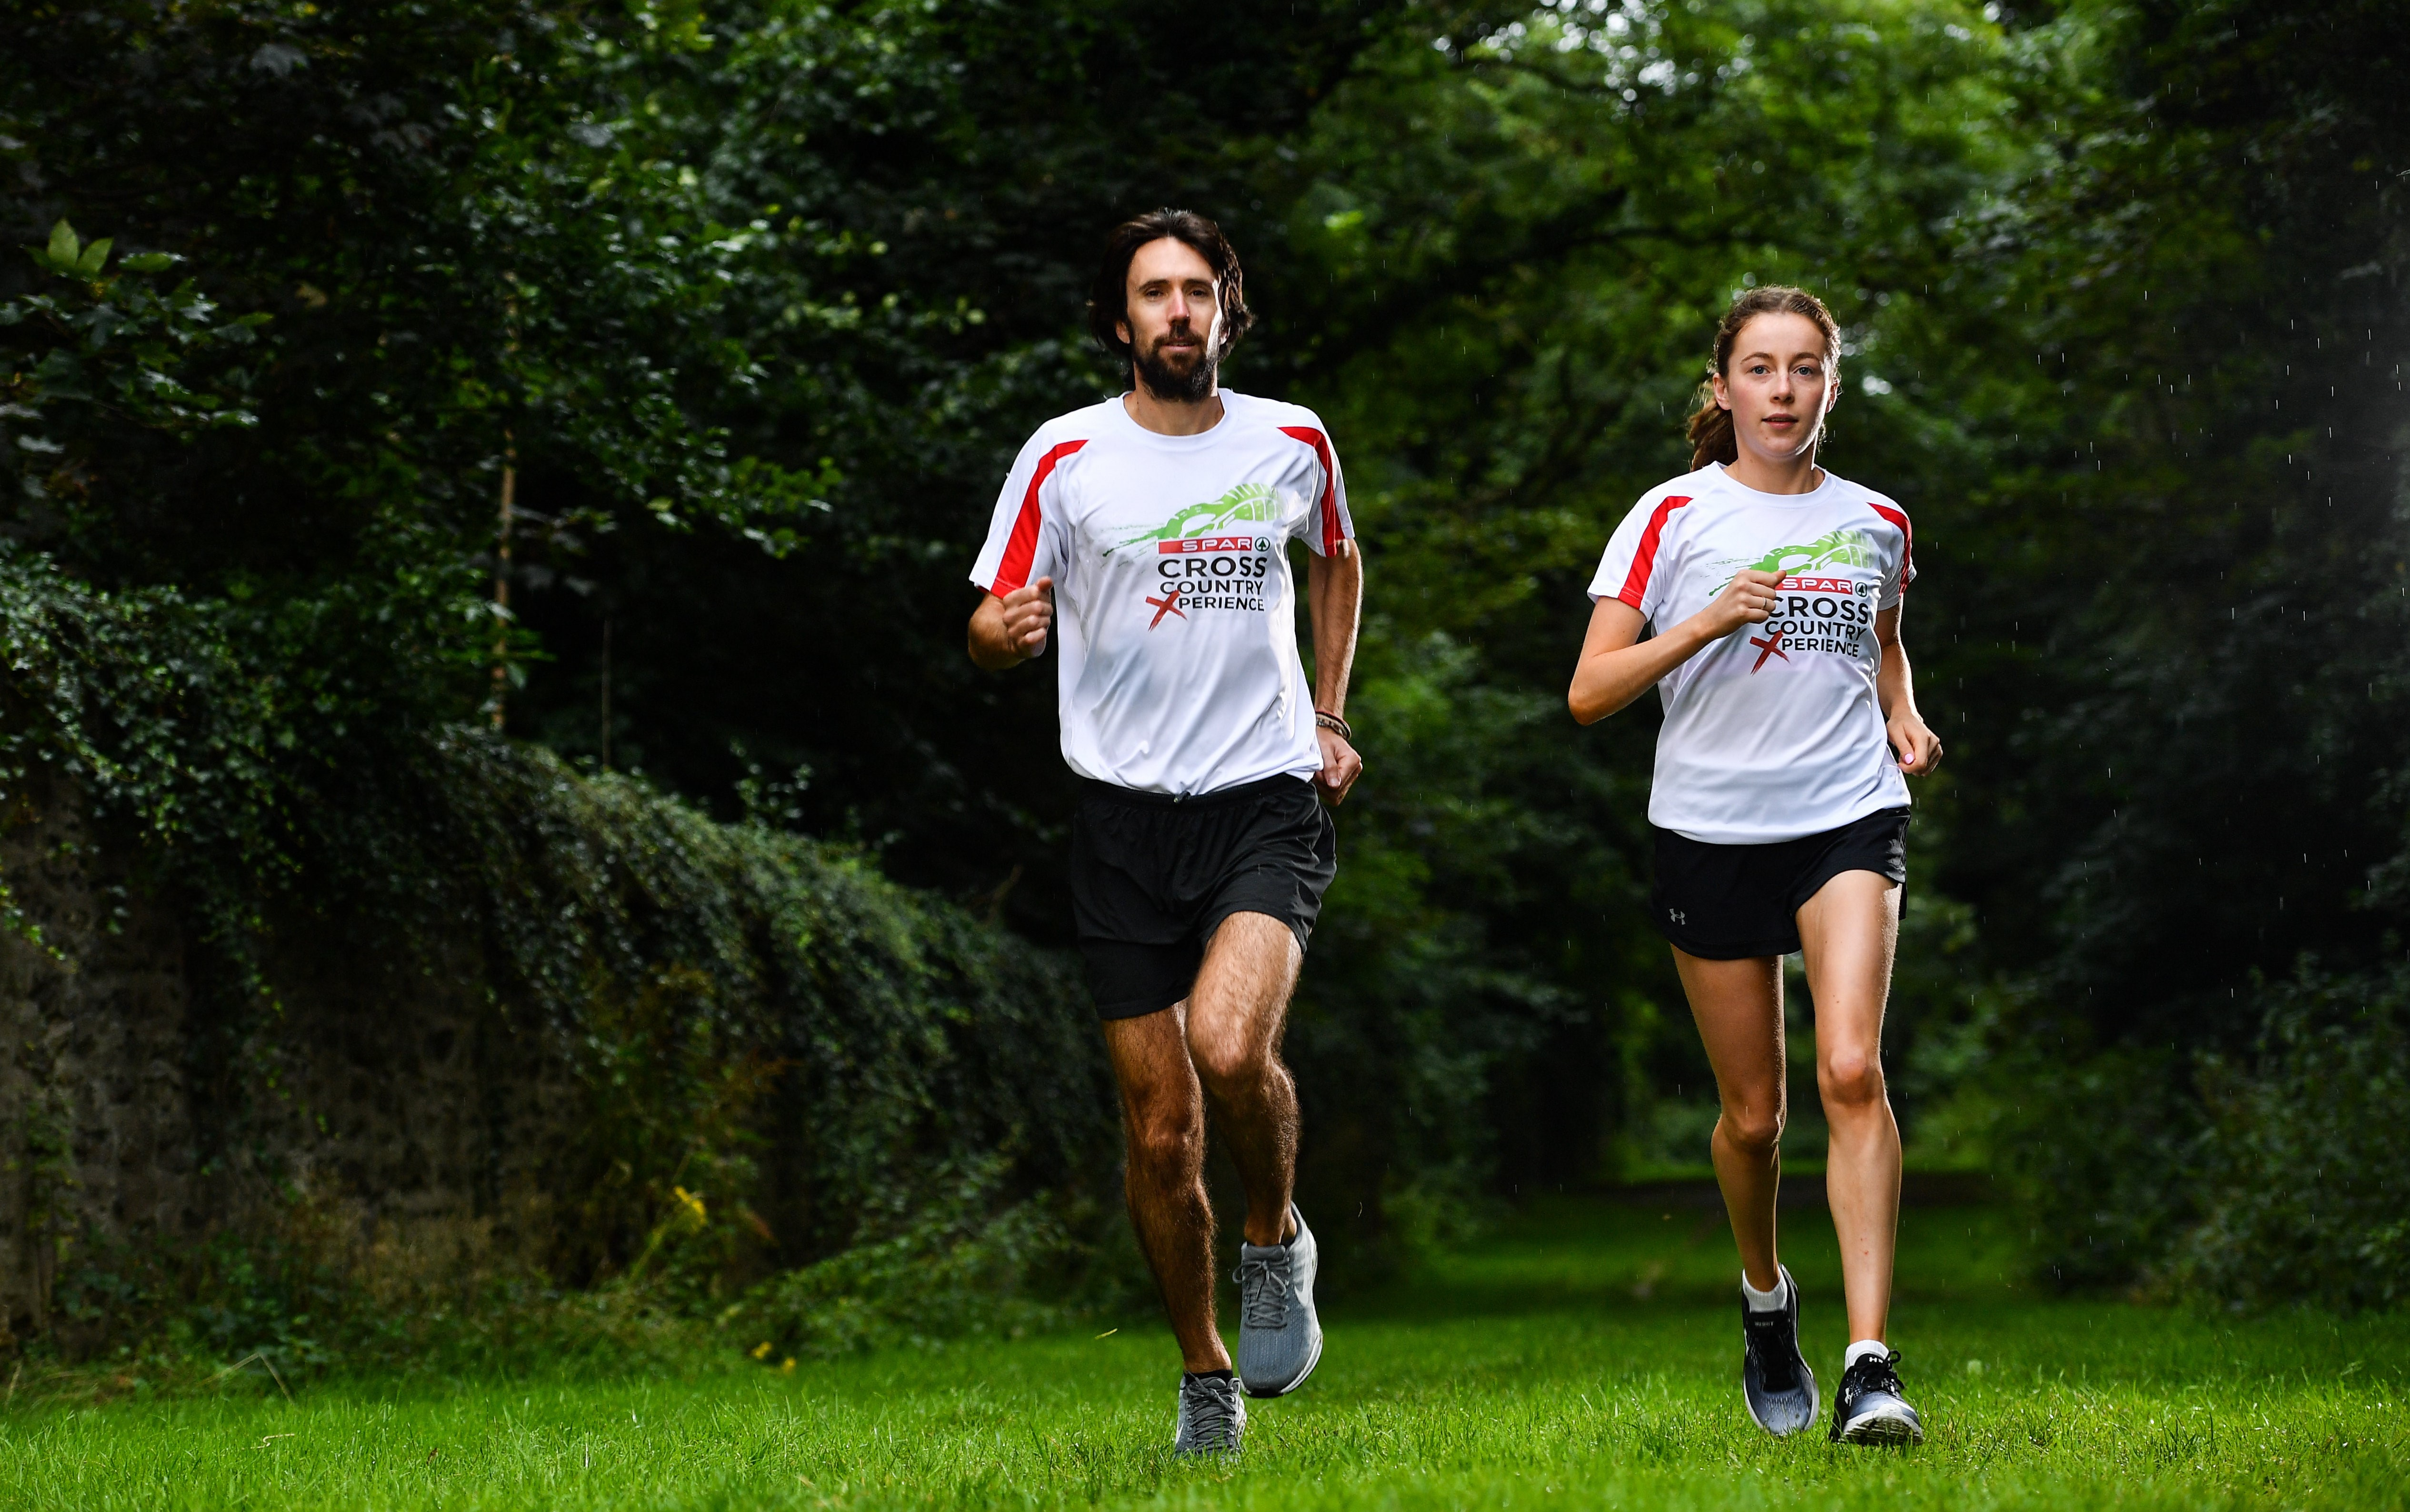 Cross Country runners set to SPAR at Autumn Open